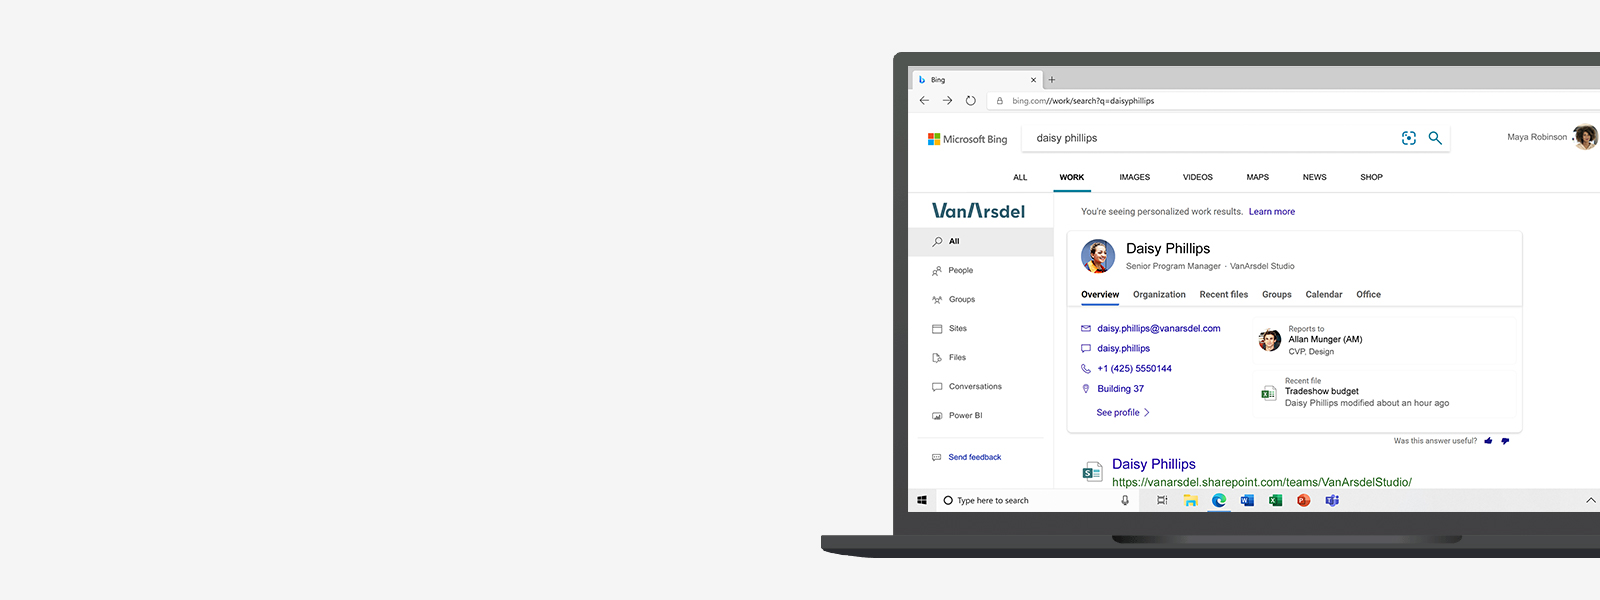 Laptop with a Microsoft Search in Bing results page on the screen.